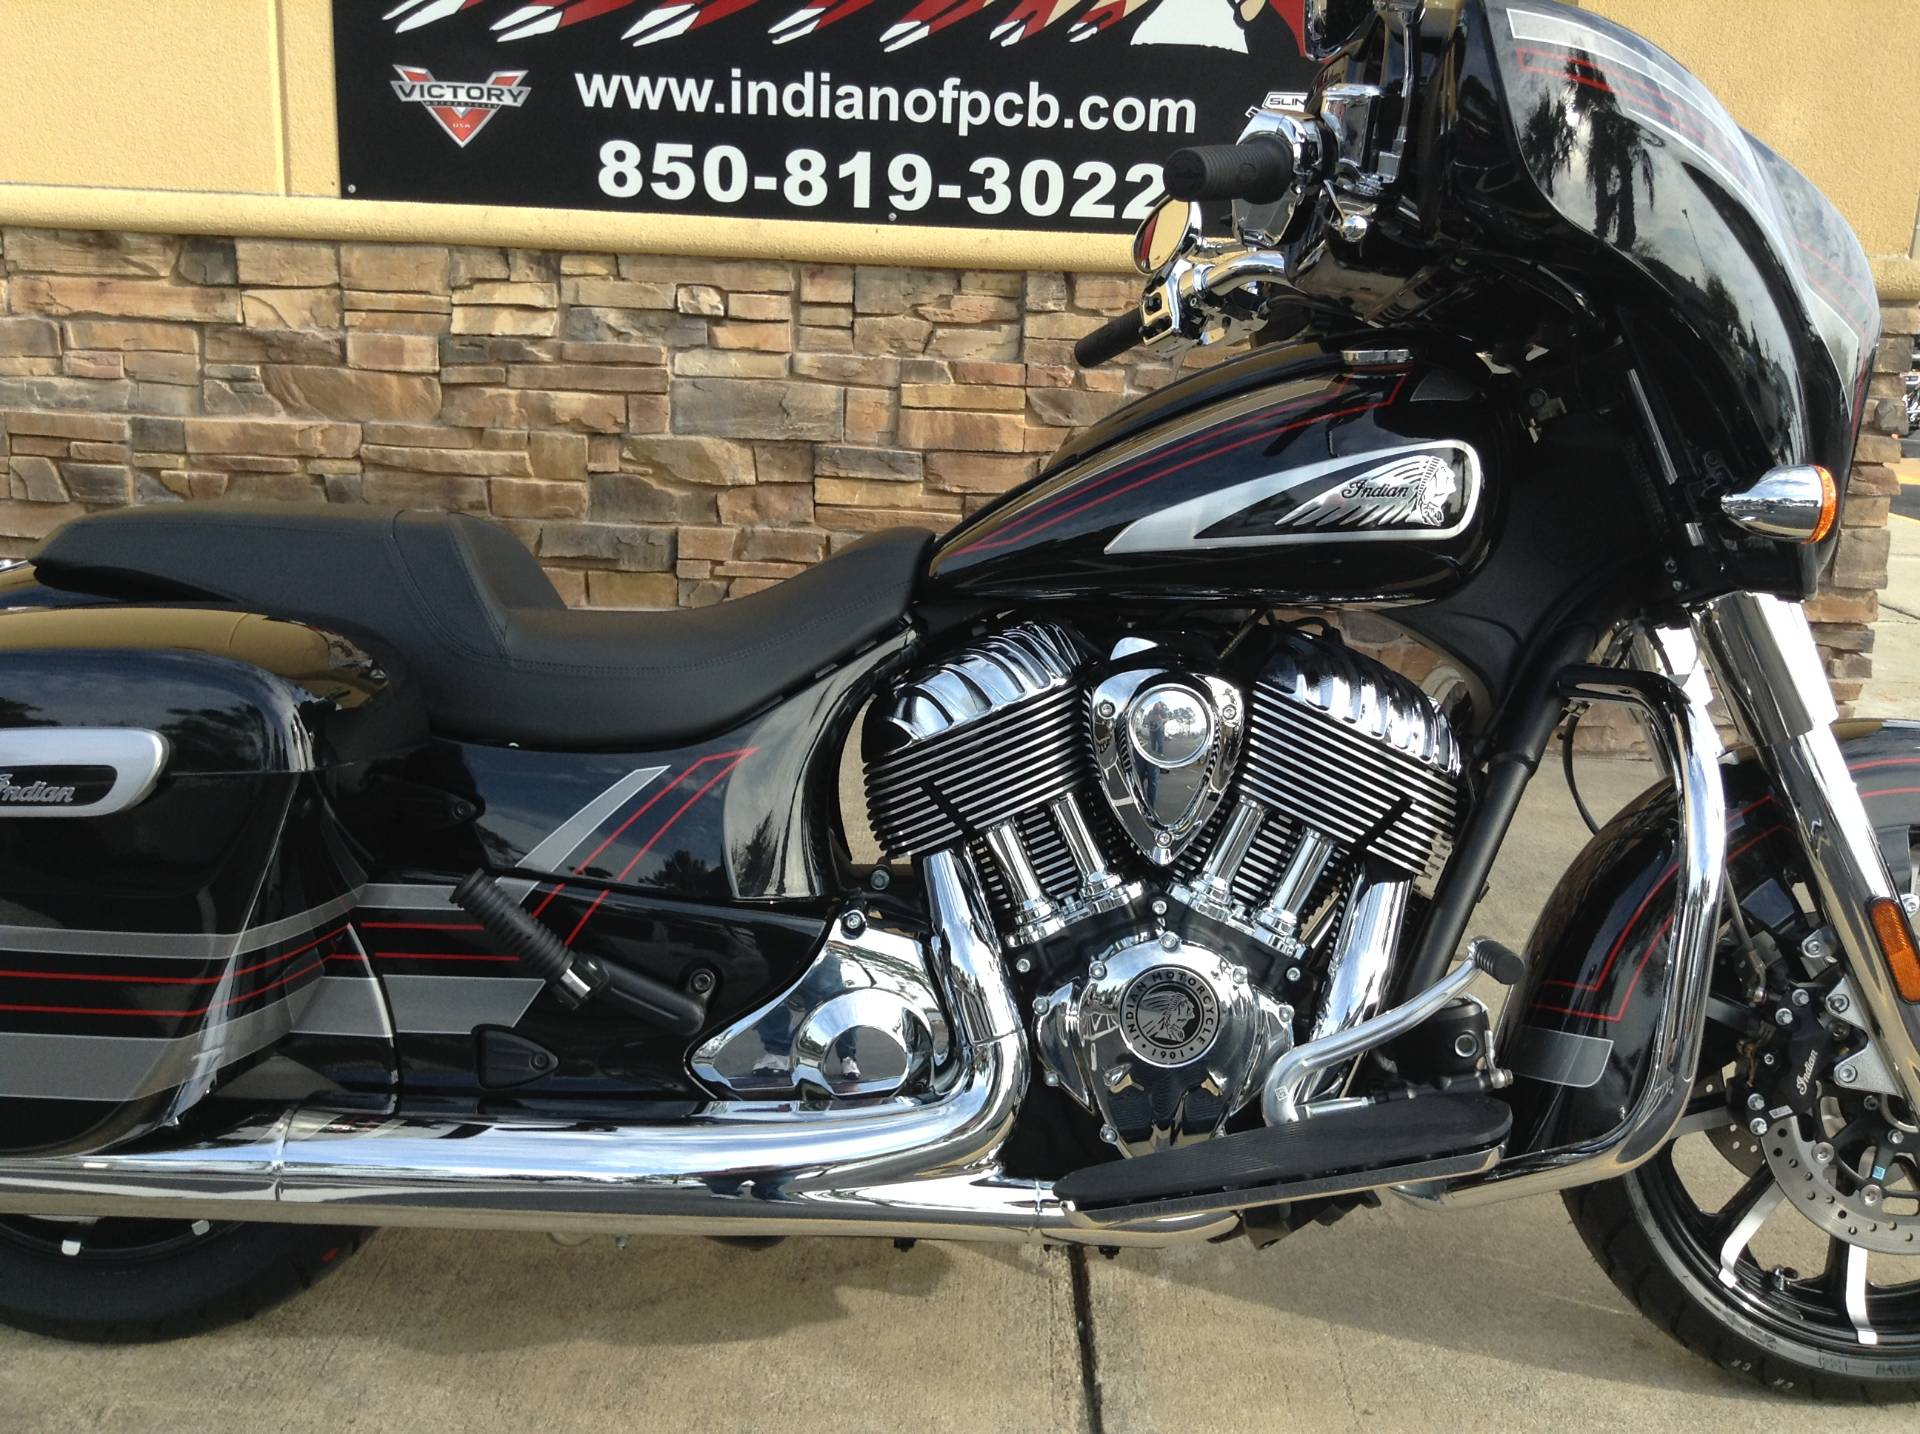 2020 Indian Chieftain® Limited in Panama City Beach, Florida - Photo 5